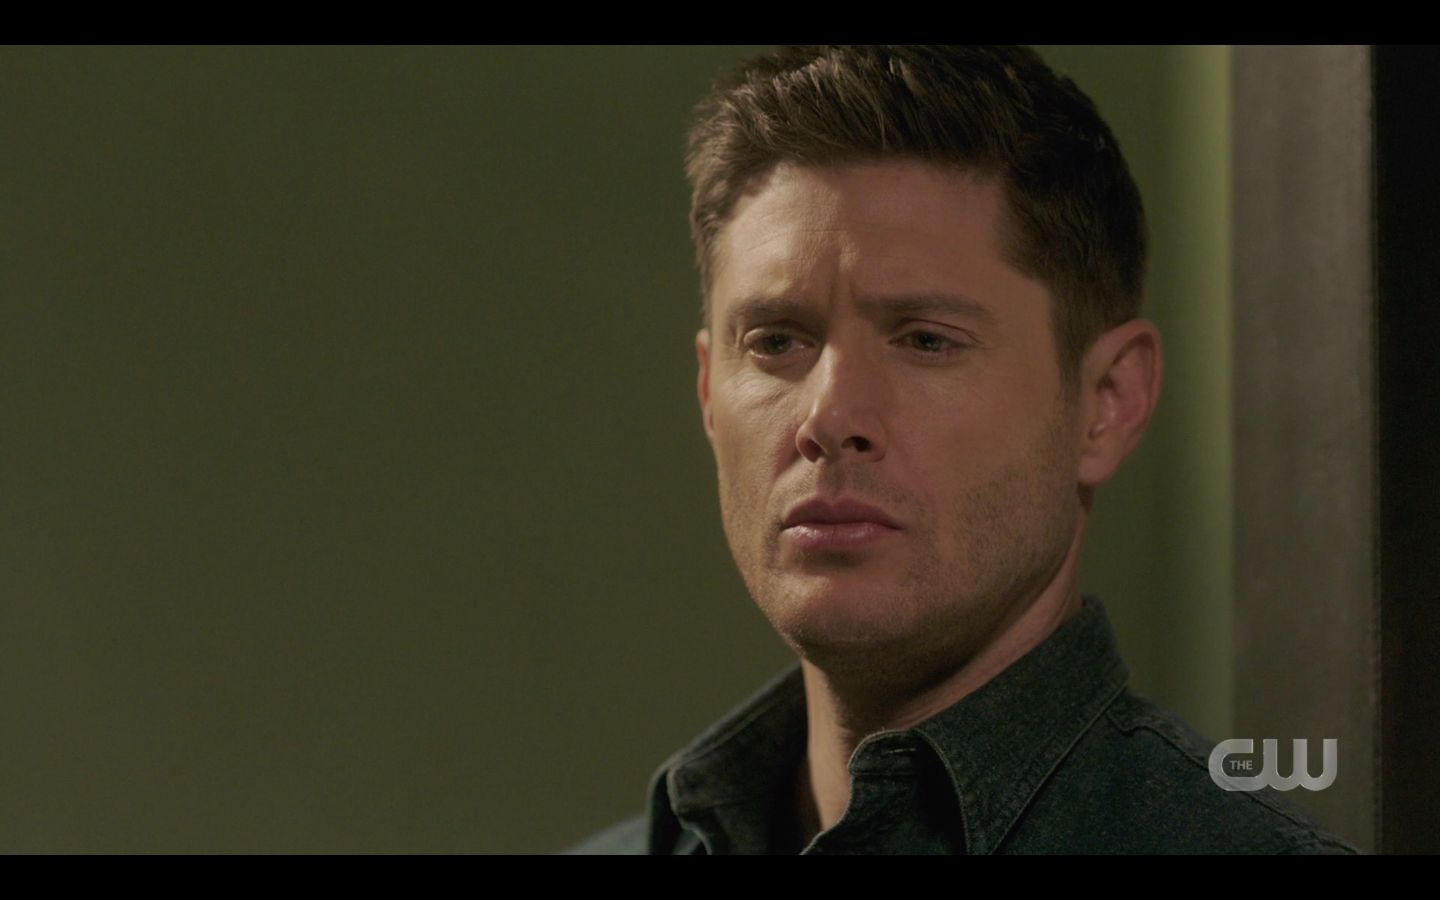 Dean Winchester to Sam what we always do about Marys death